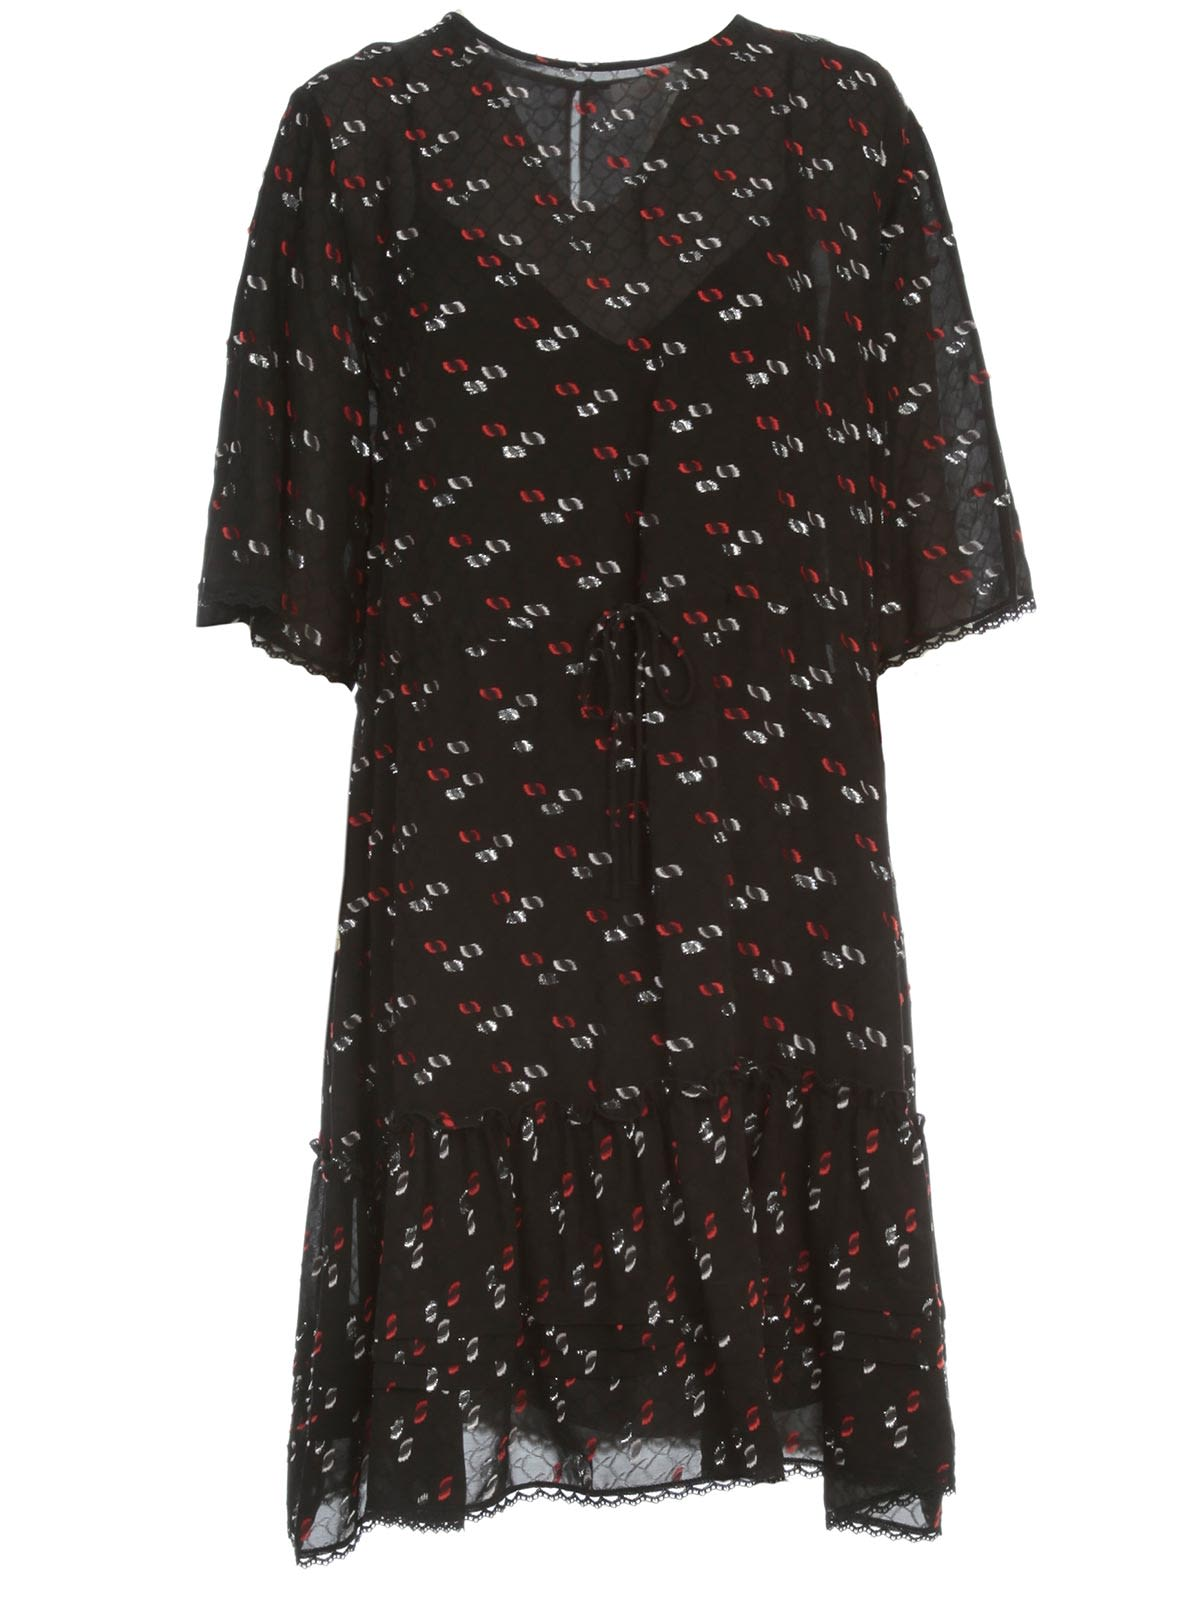 Buy See by Chloé Dress 3/4s Crew Neck Multi online, shop See by Chloé with free shipping